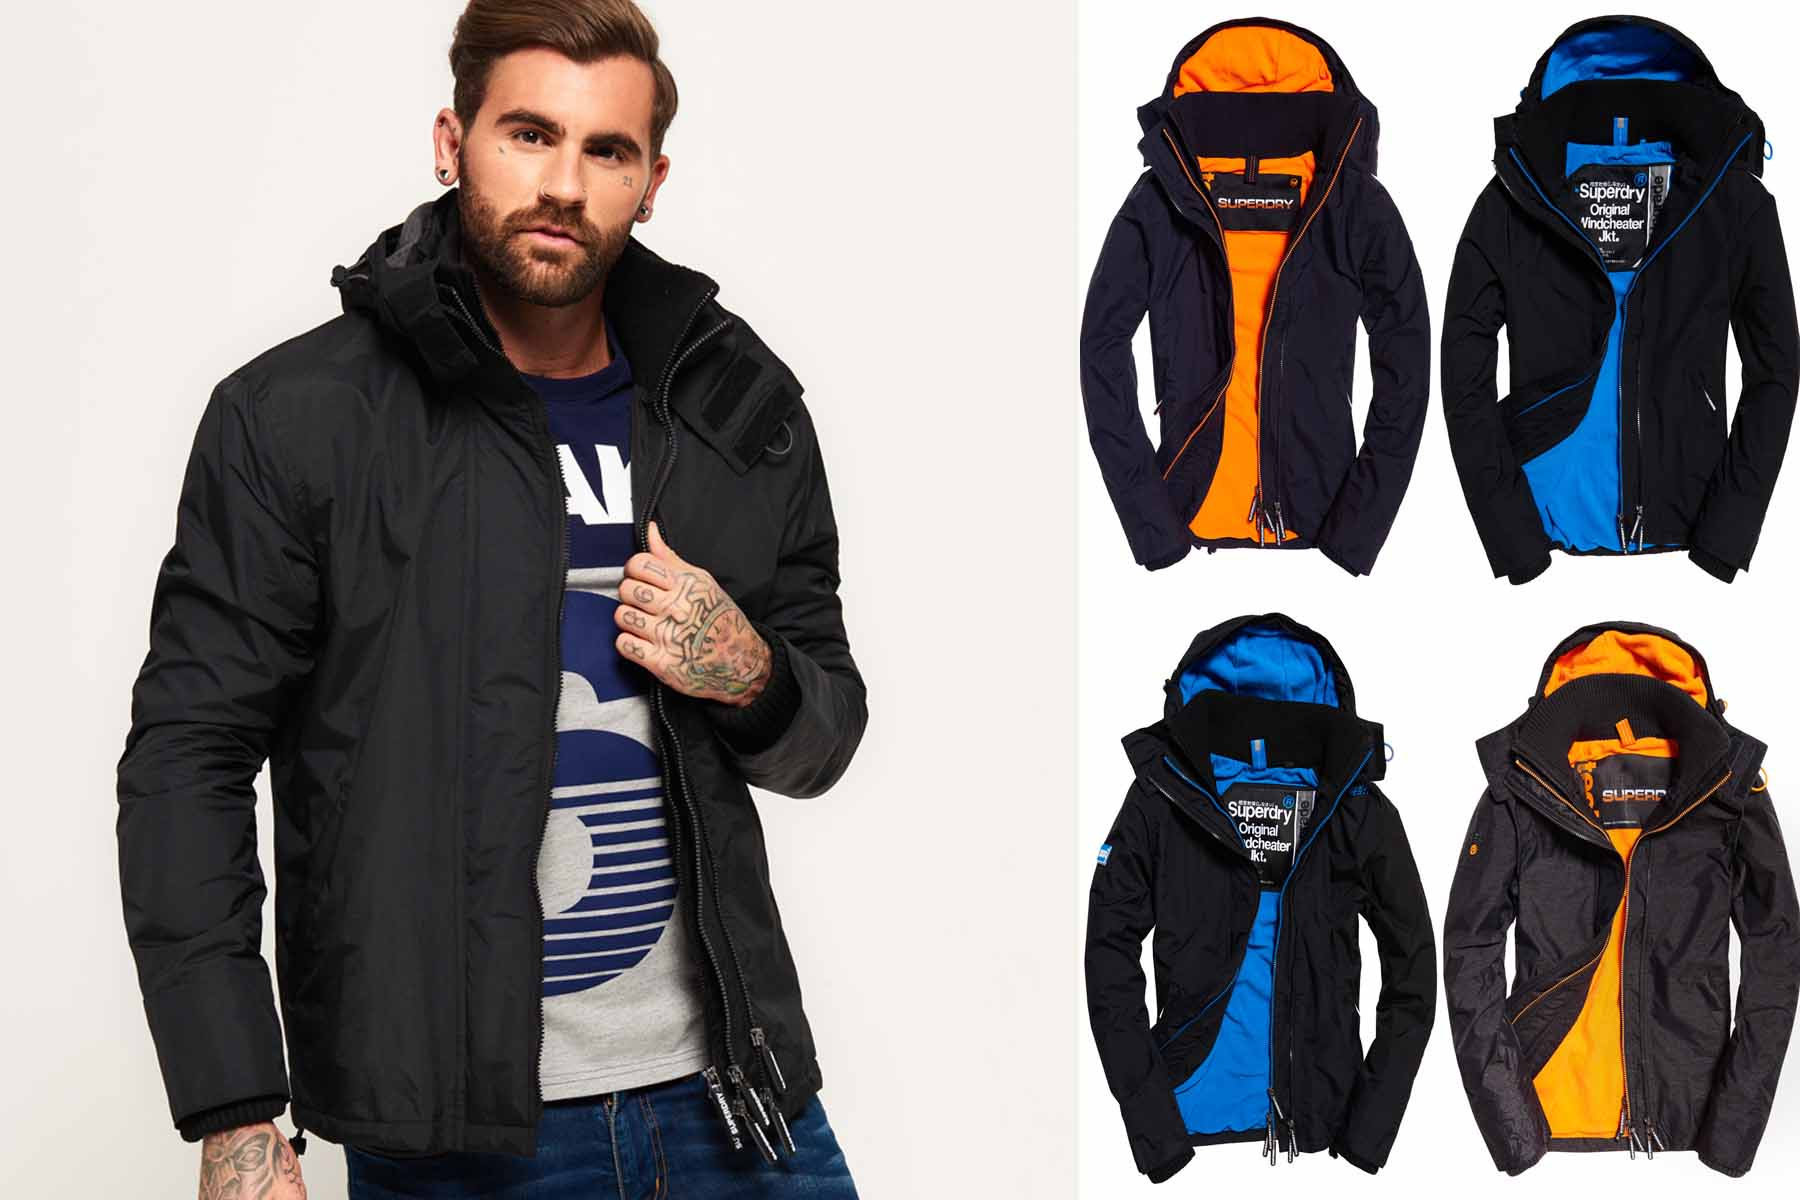 f4686173a264f Sentinel New Mens Superdry Jackets Selection - Various Styles & Colours  20113